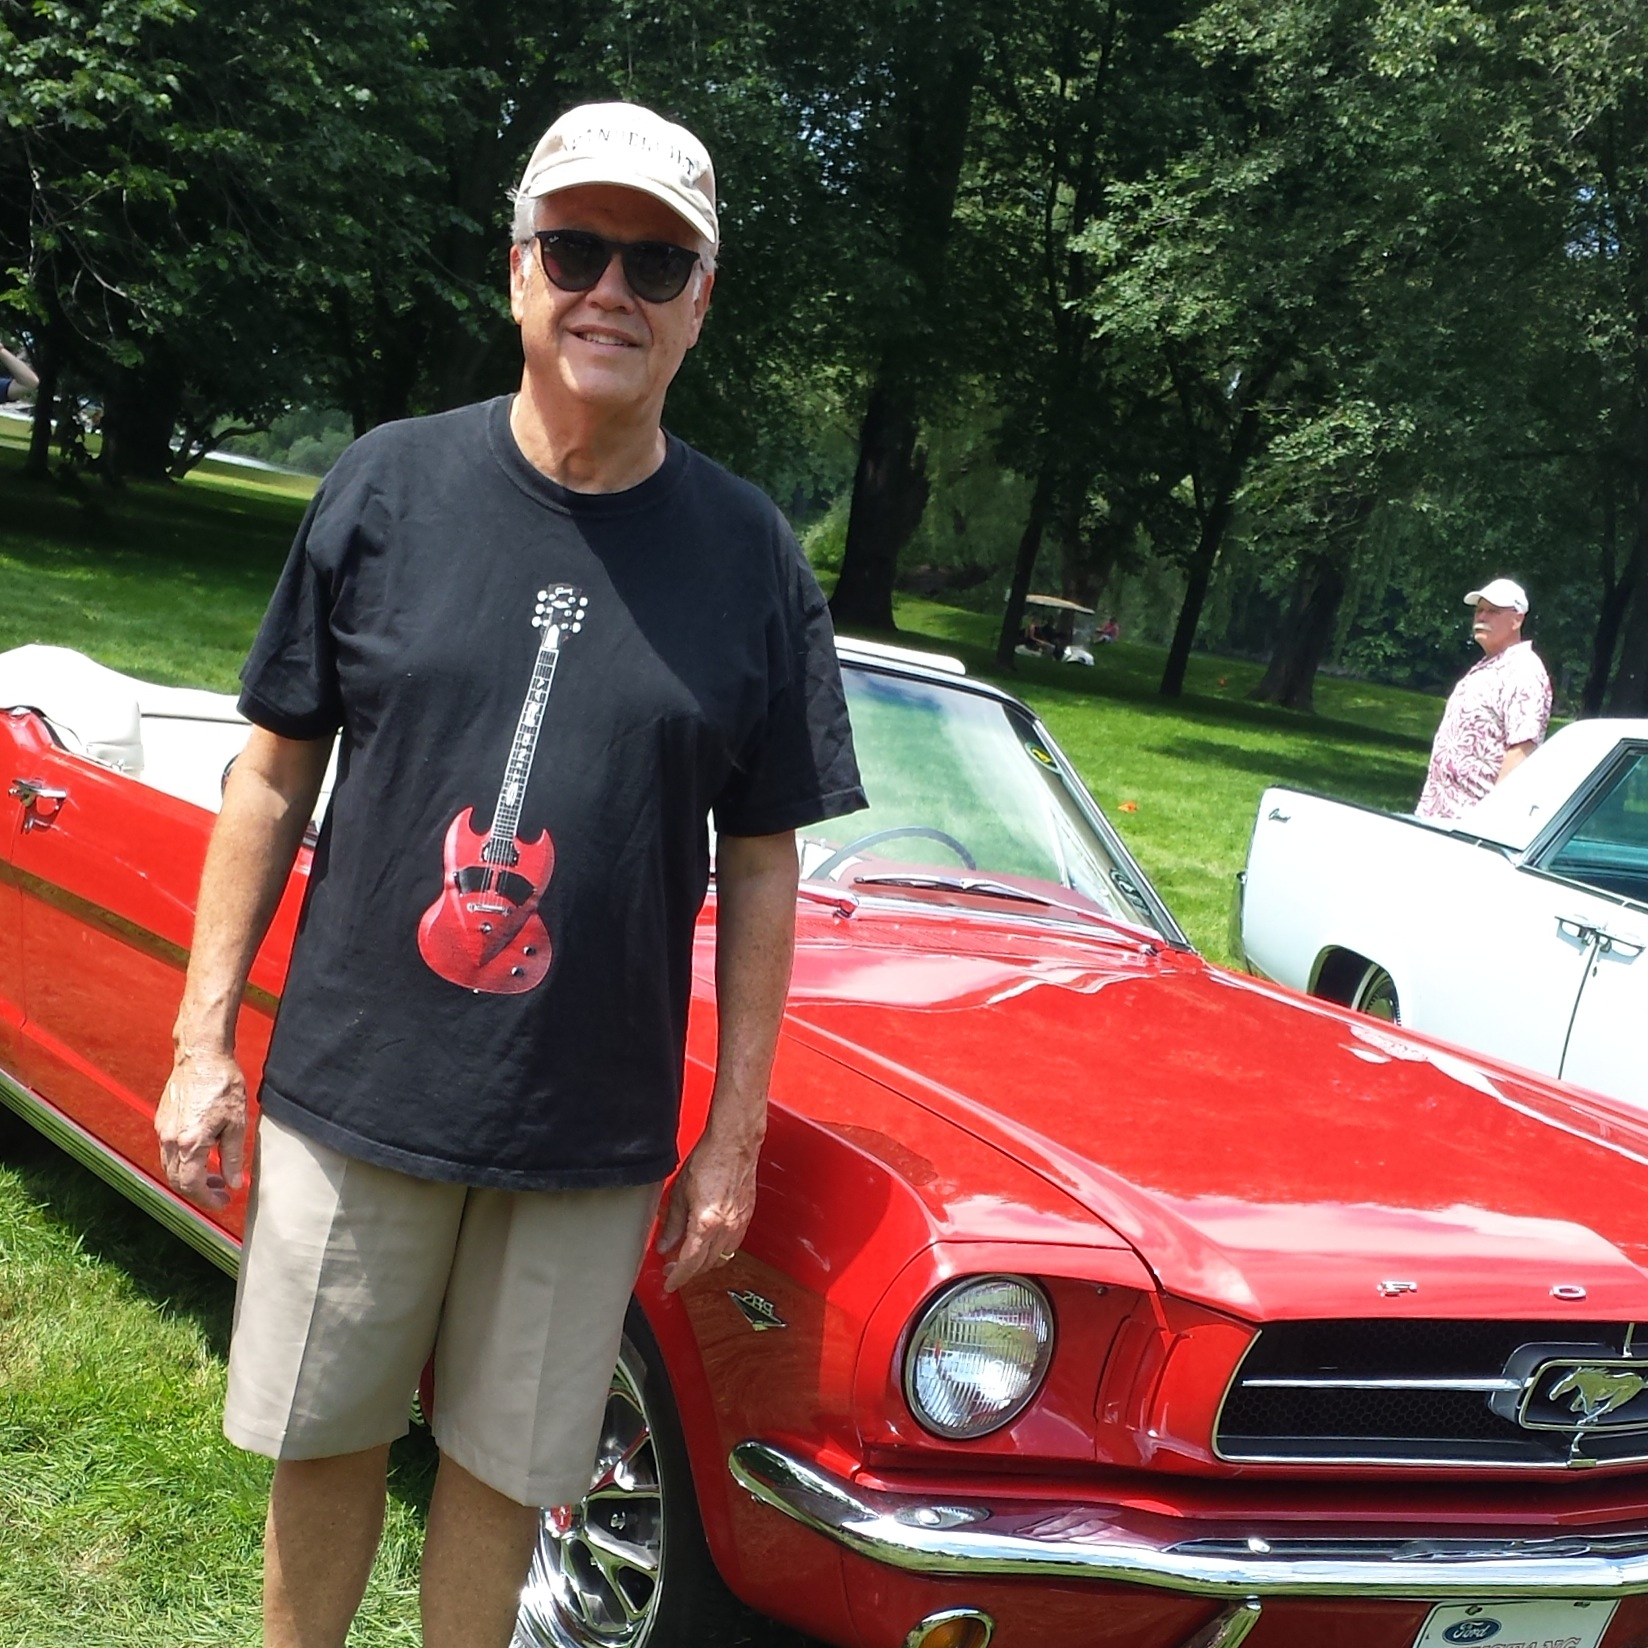 With Dad @ classic car show before camp!